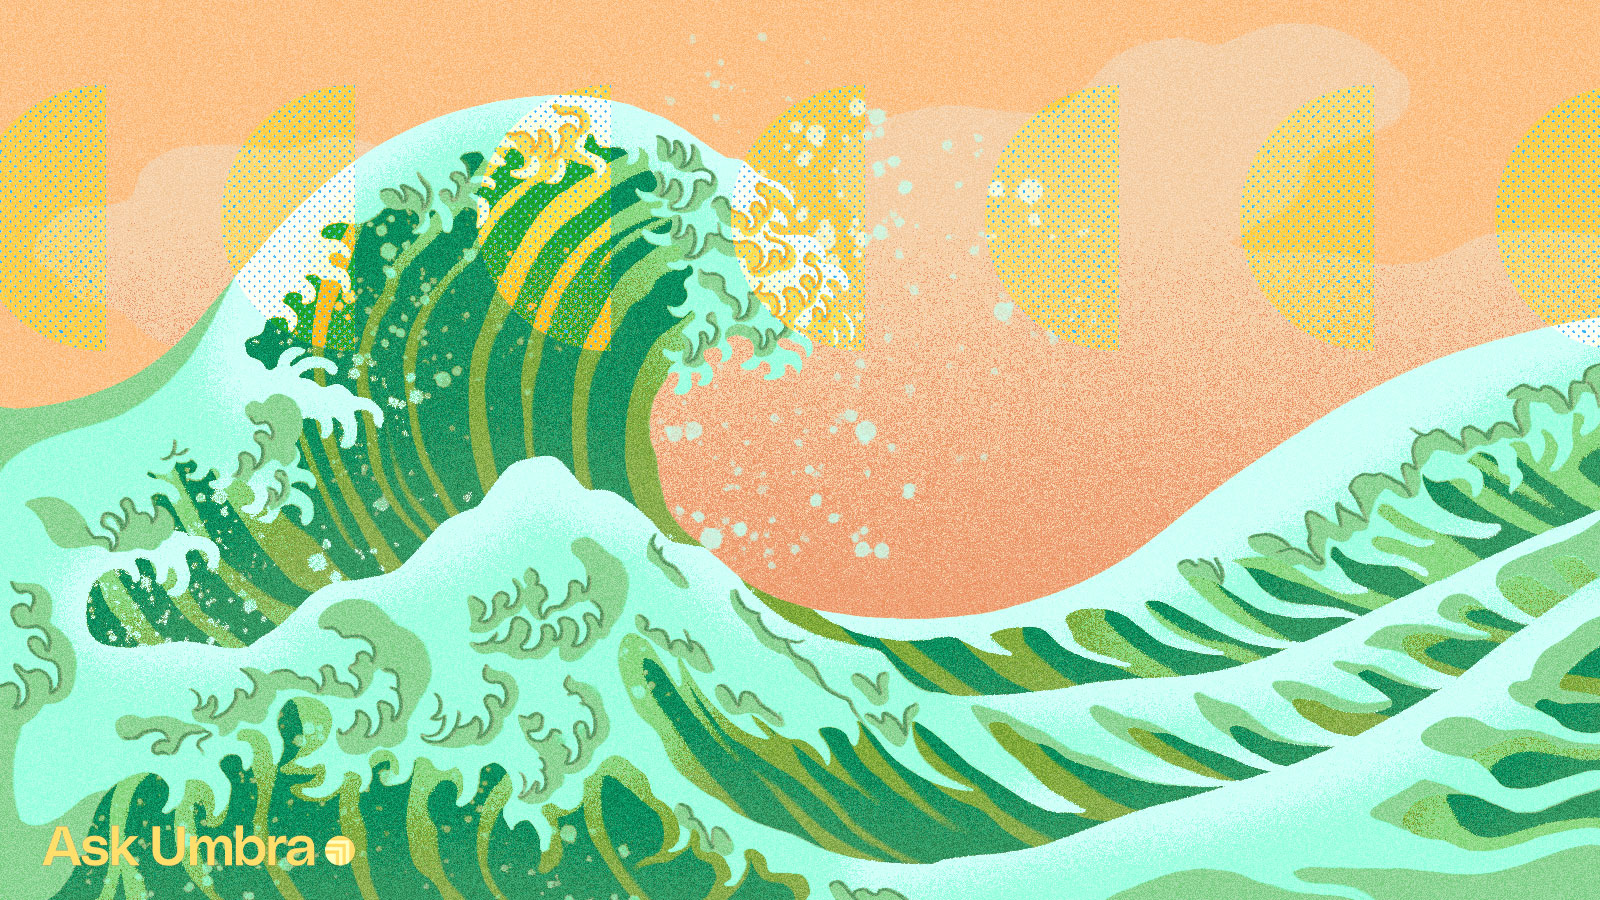 Illustration of a green wave in the style of Hokusai